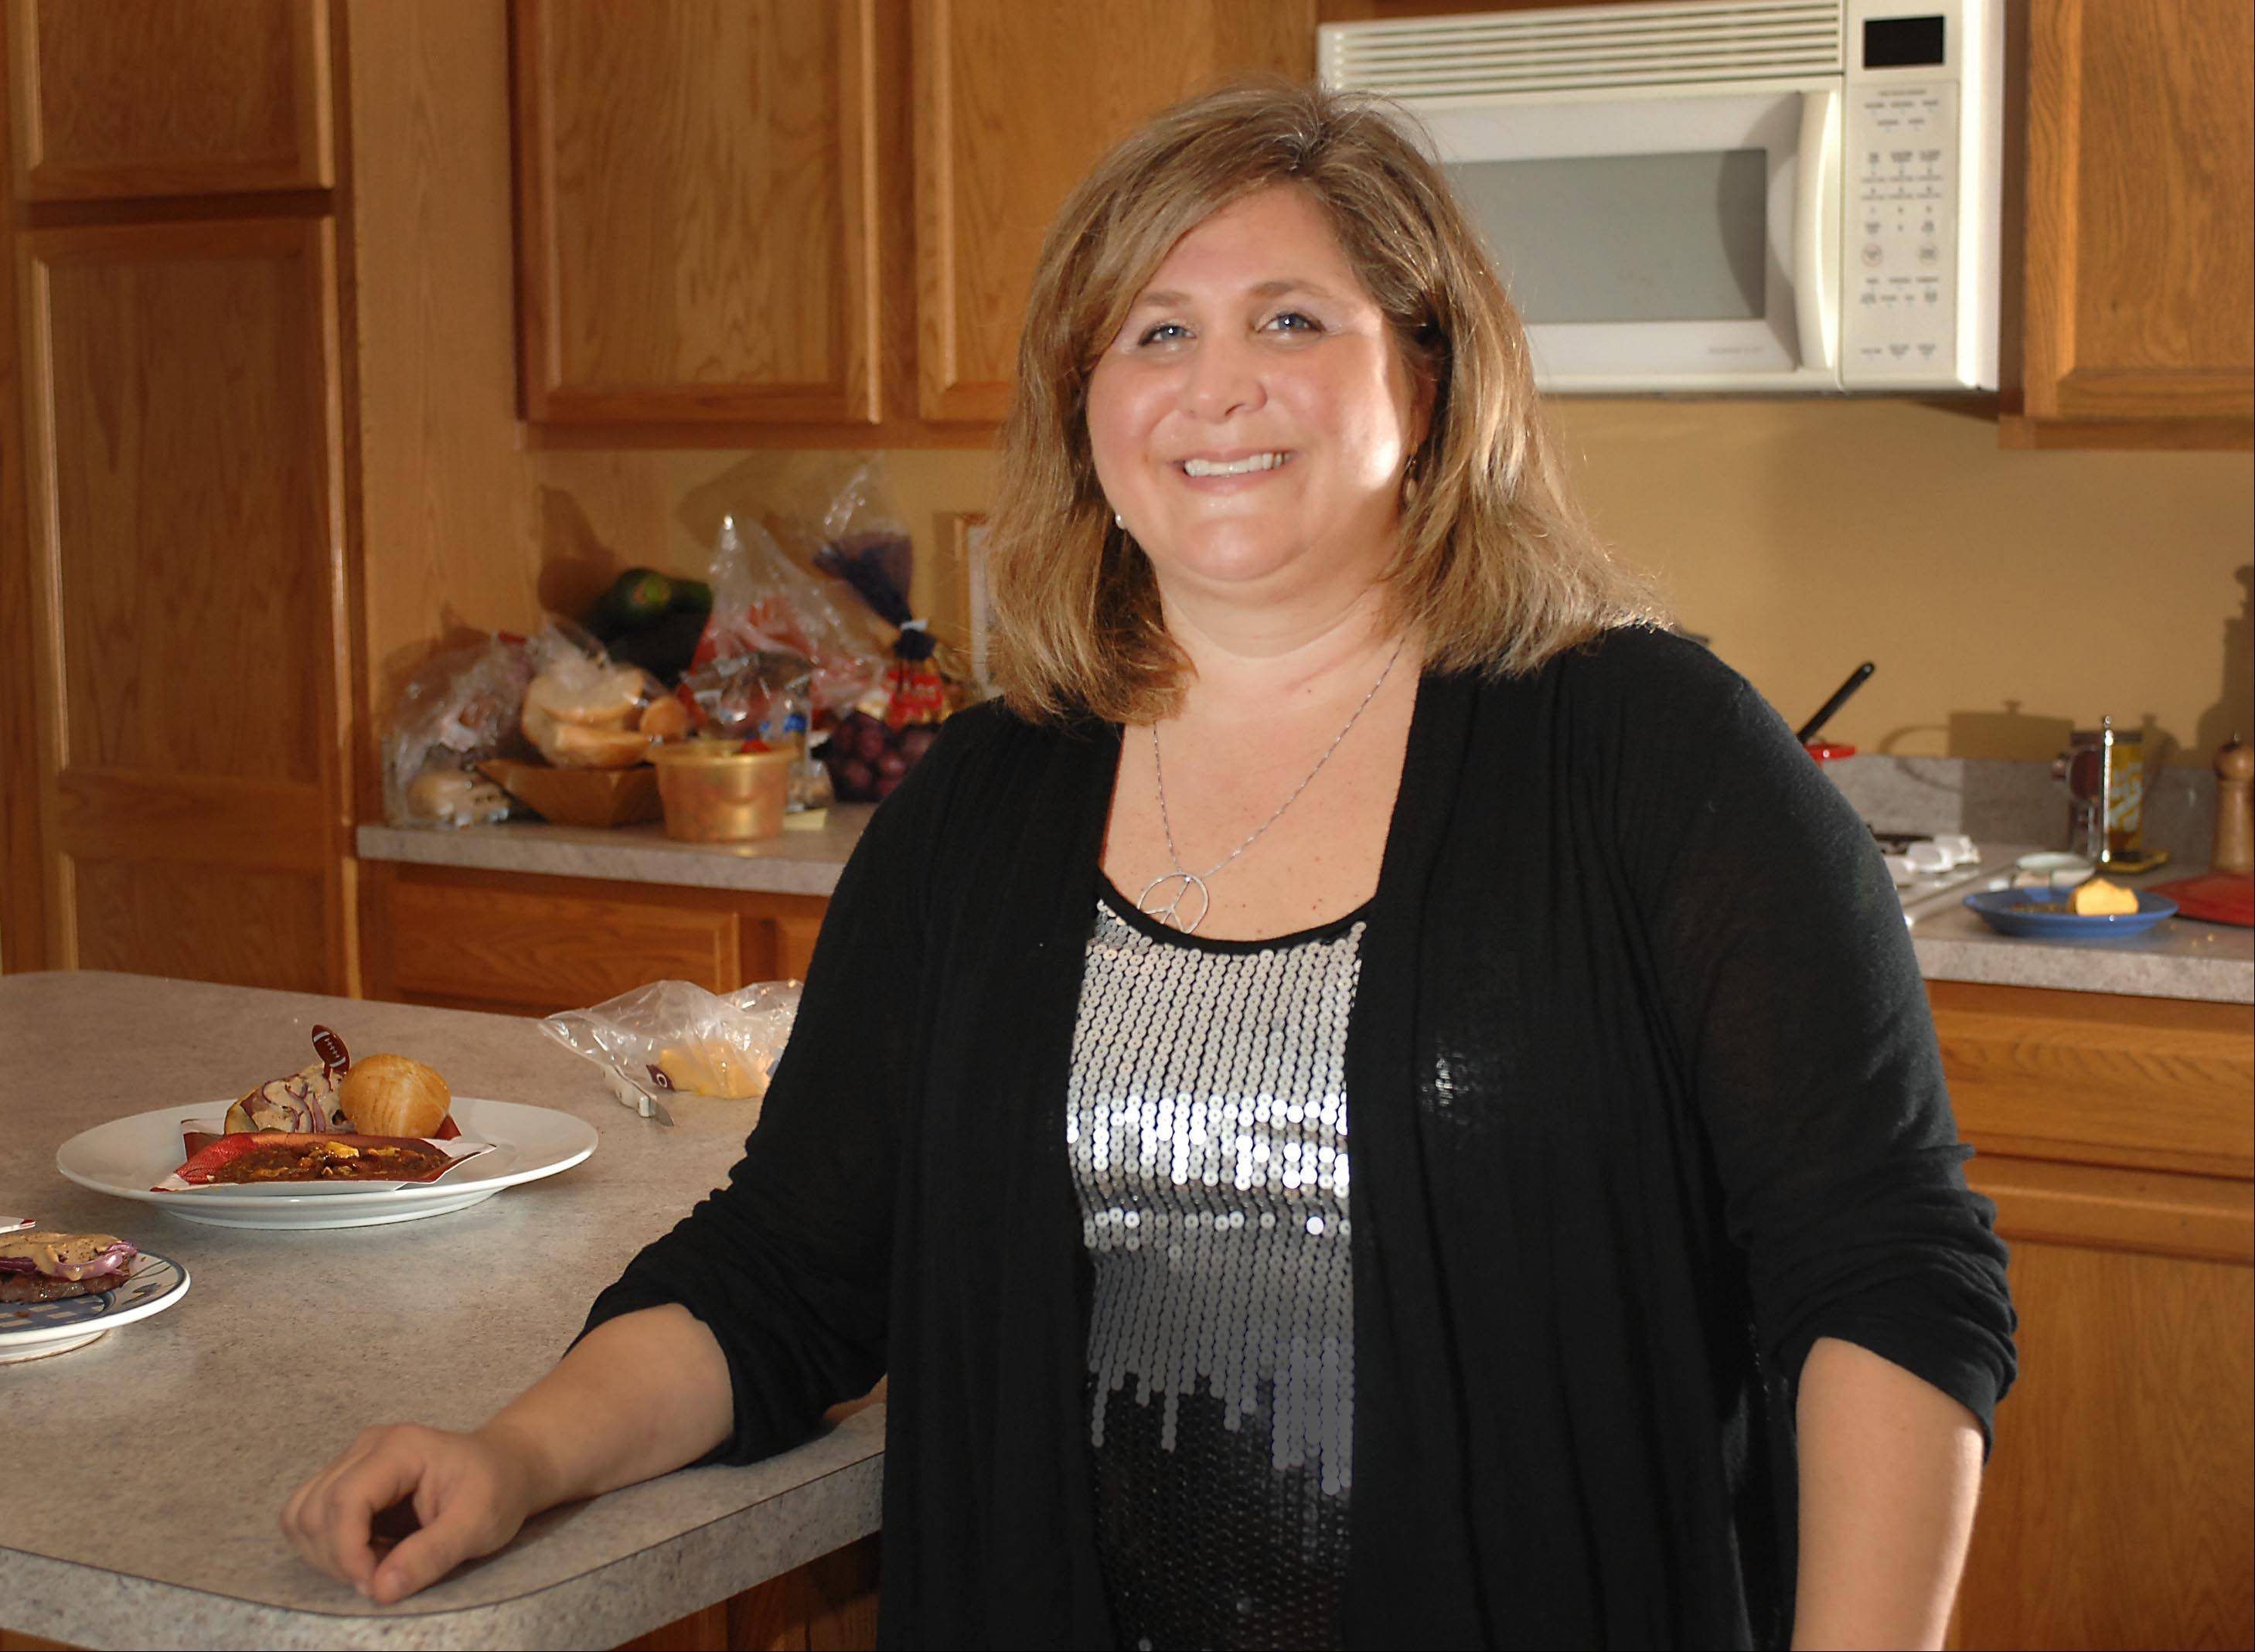 Mary Beth Thornton of Cary will compete in Round 2 of the Cook of the Week Challenge.